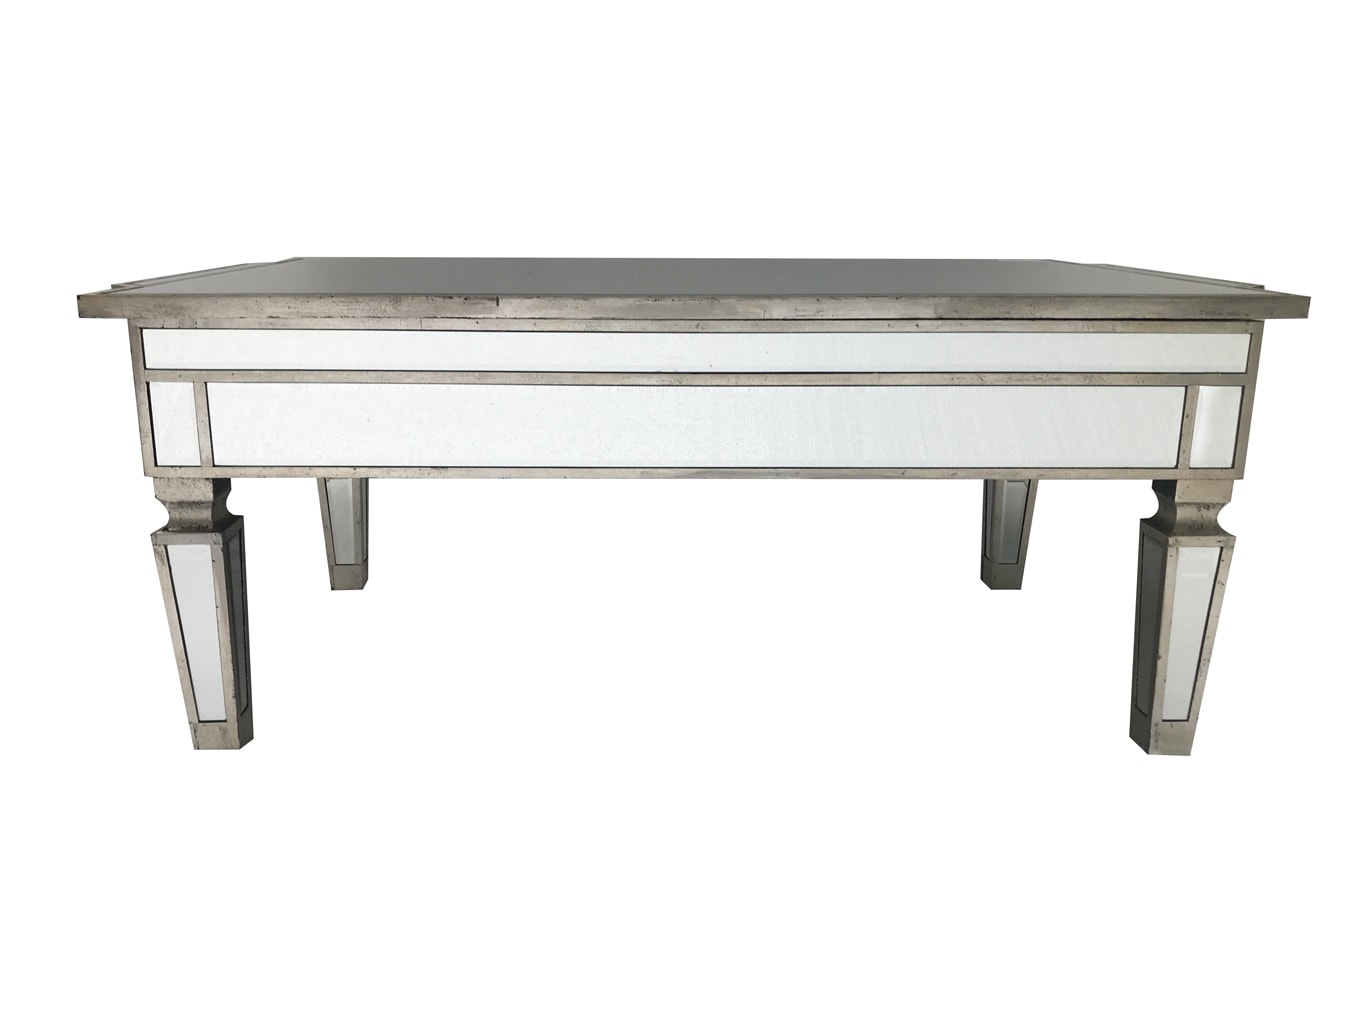 Mirrored coffee table with an antiqued silver wooden edging with a bevelled mirror top